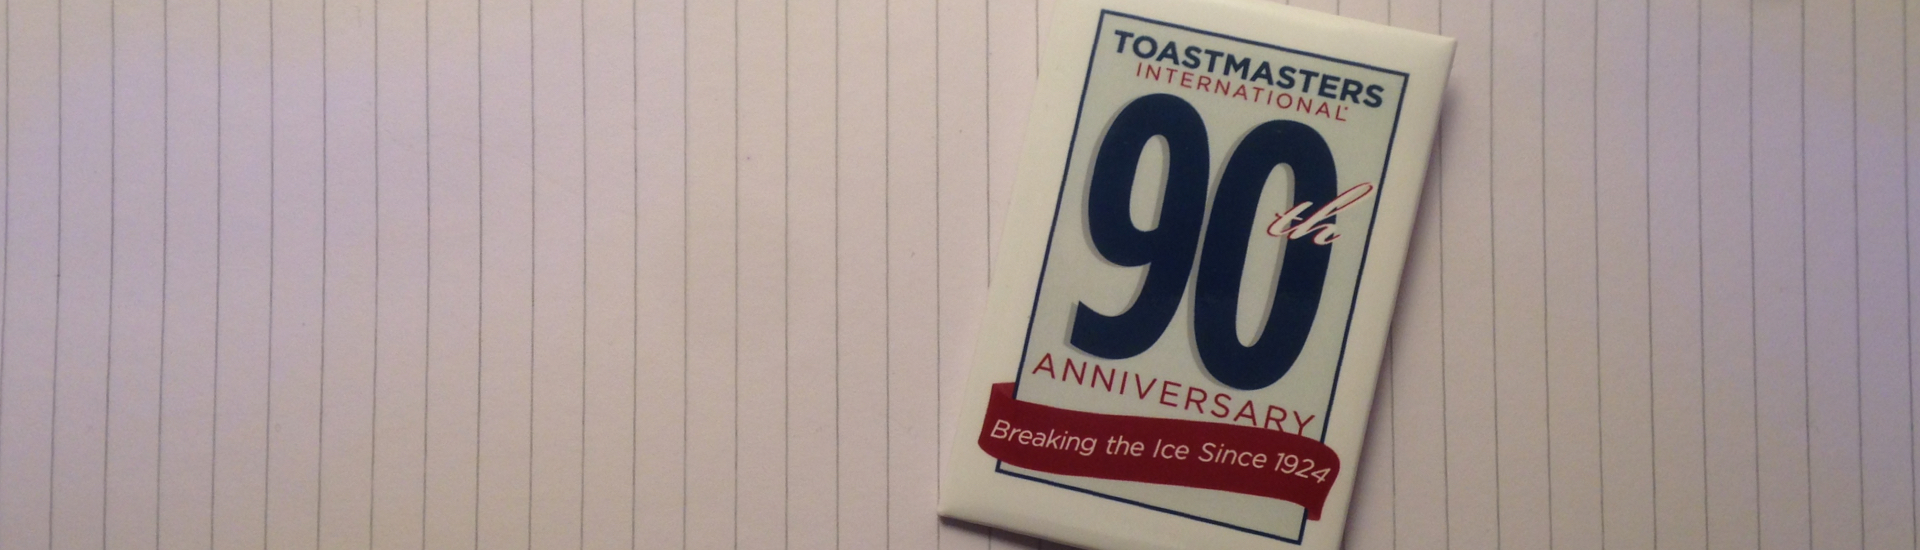 Your Role As A Grammarian Toastmasters Meeting Role Royce To